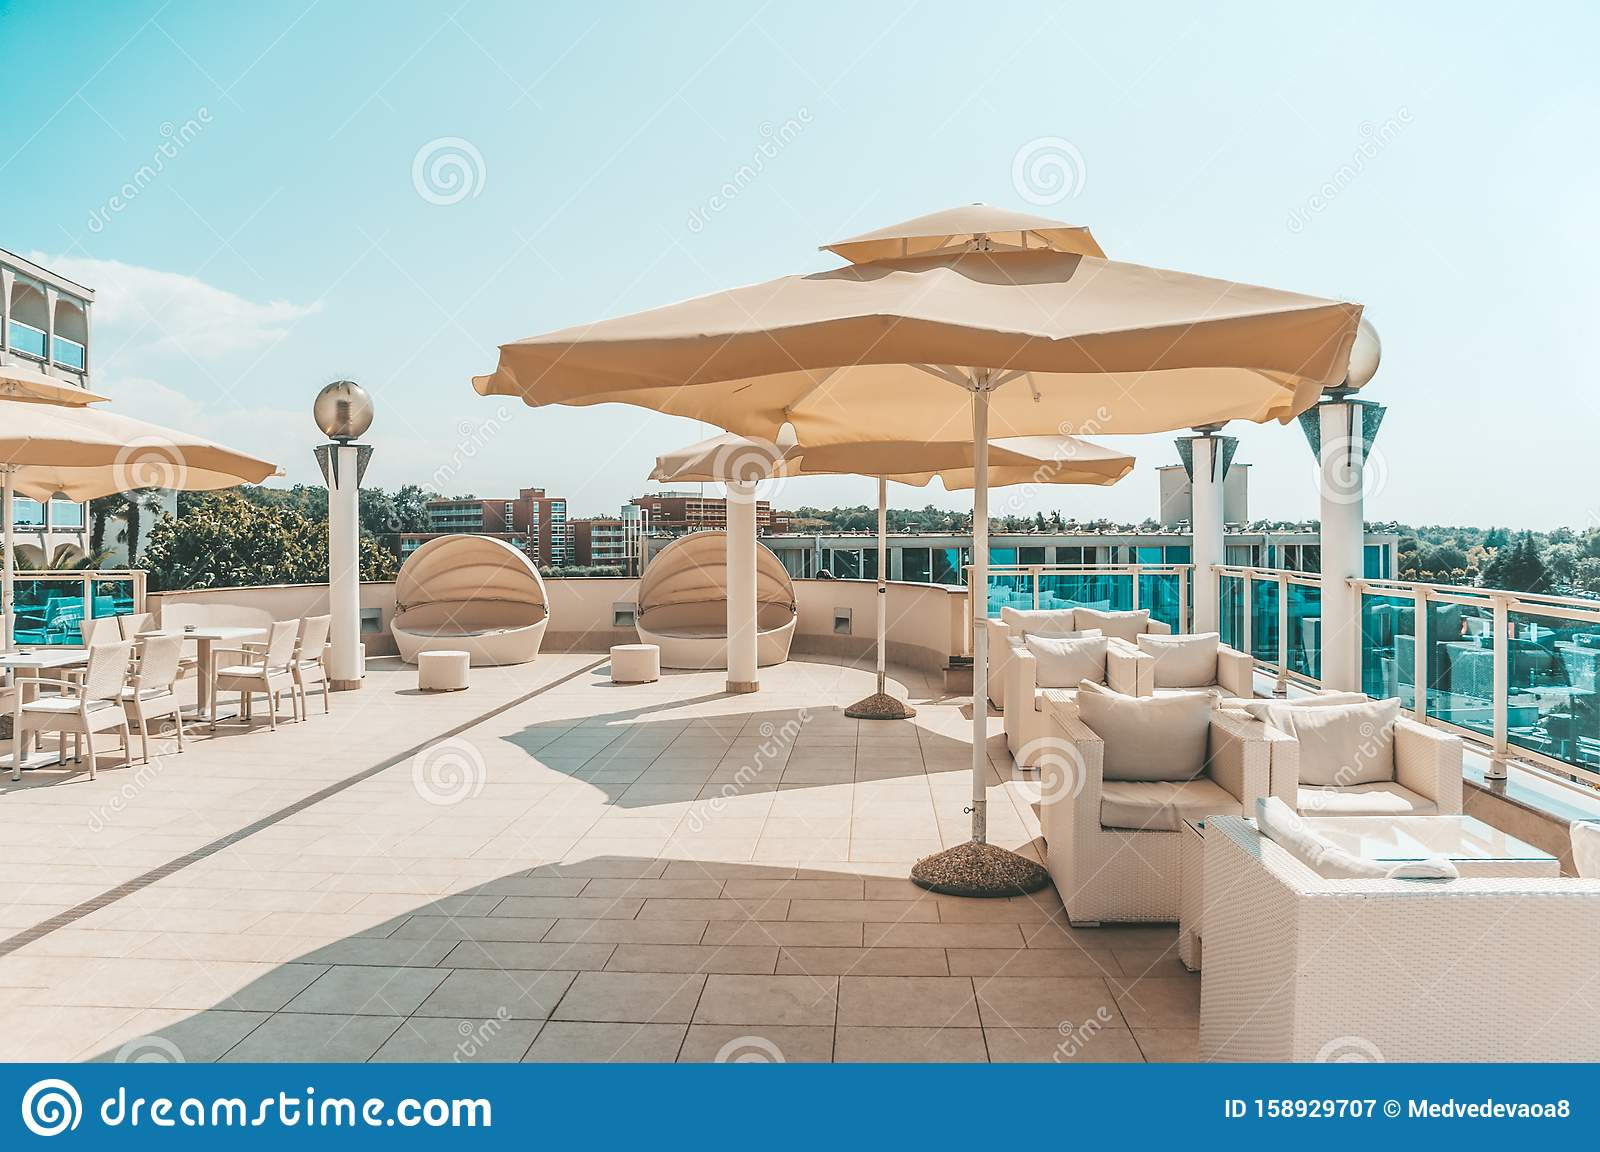 Large White Umbrella And Outdoor Furniture Sofas And Rattan Chairs With Cushions And A Glass Topped Table Place To Relax On The Stock Image Image Of Furniture House 158929707